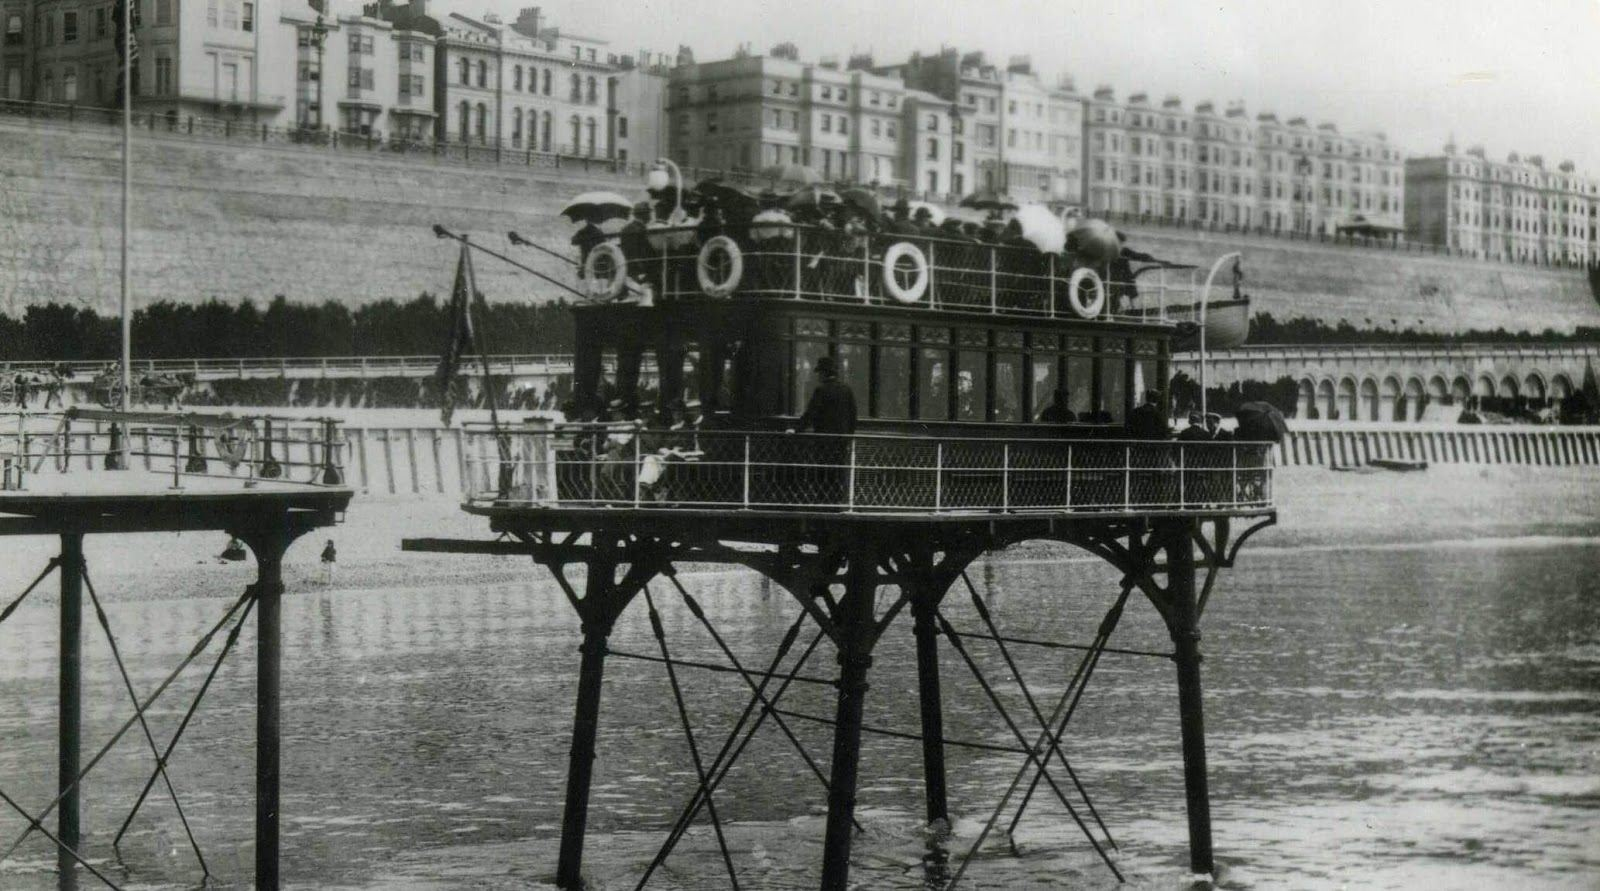 Brighton_and_Rottingdean_Seashore_Electric_Railway_004